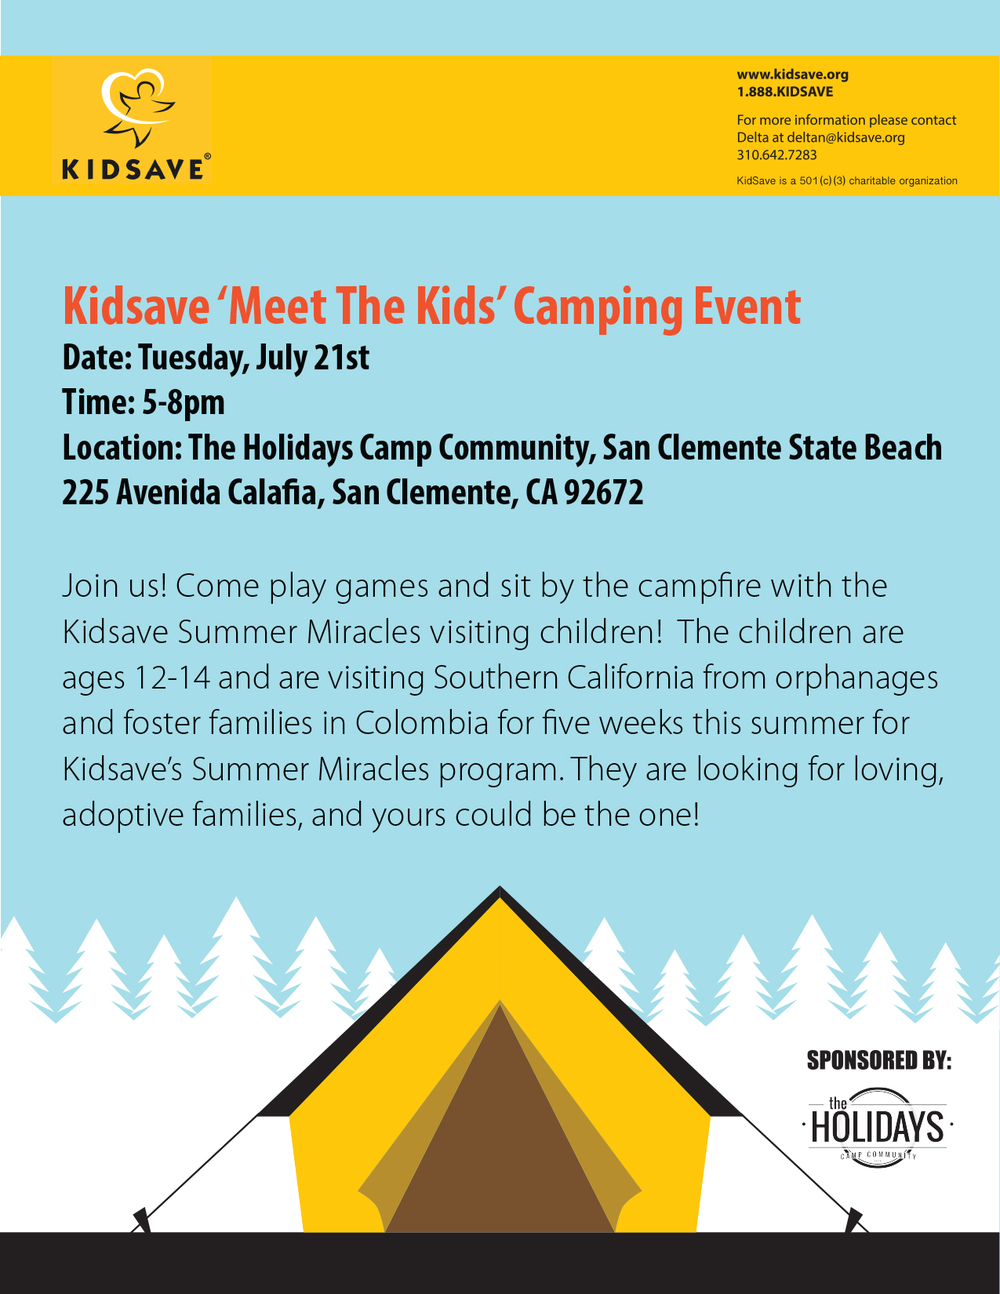 Kidsave Meet the Kids Camping Event Flier